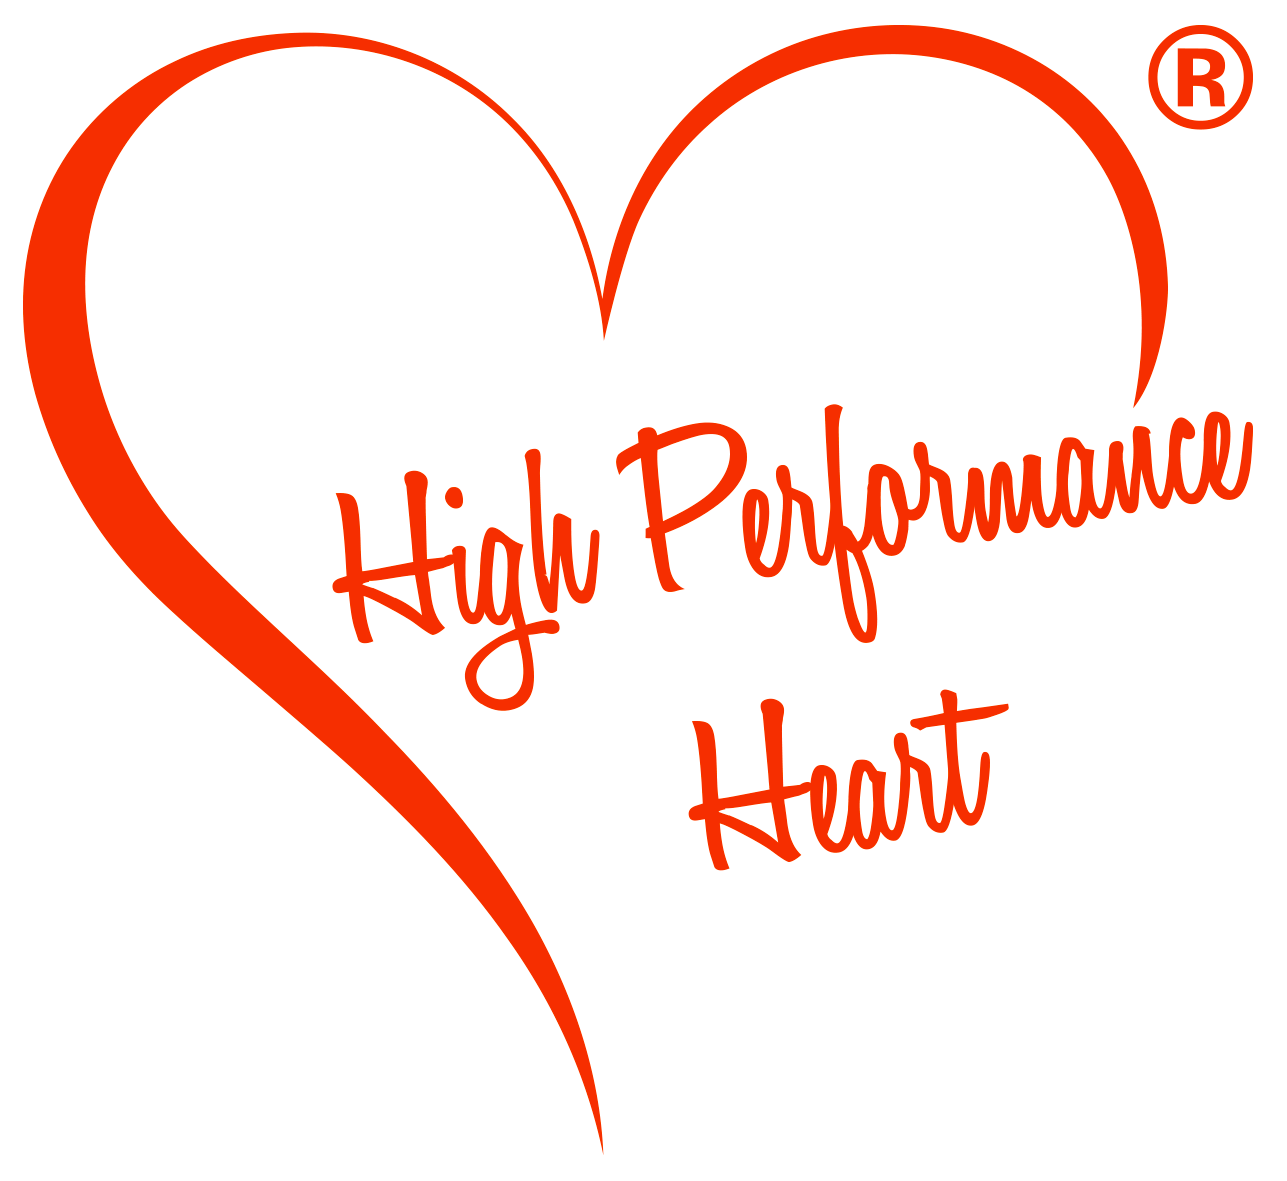 HIGH PERFORMANCE HEART